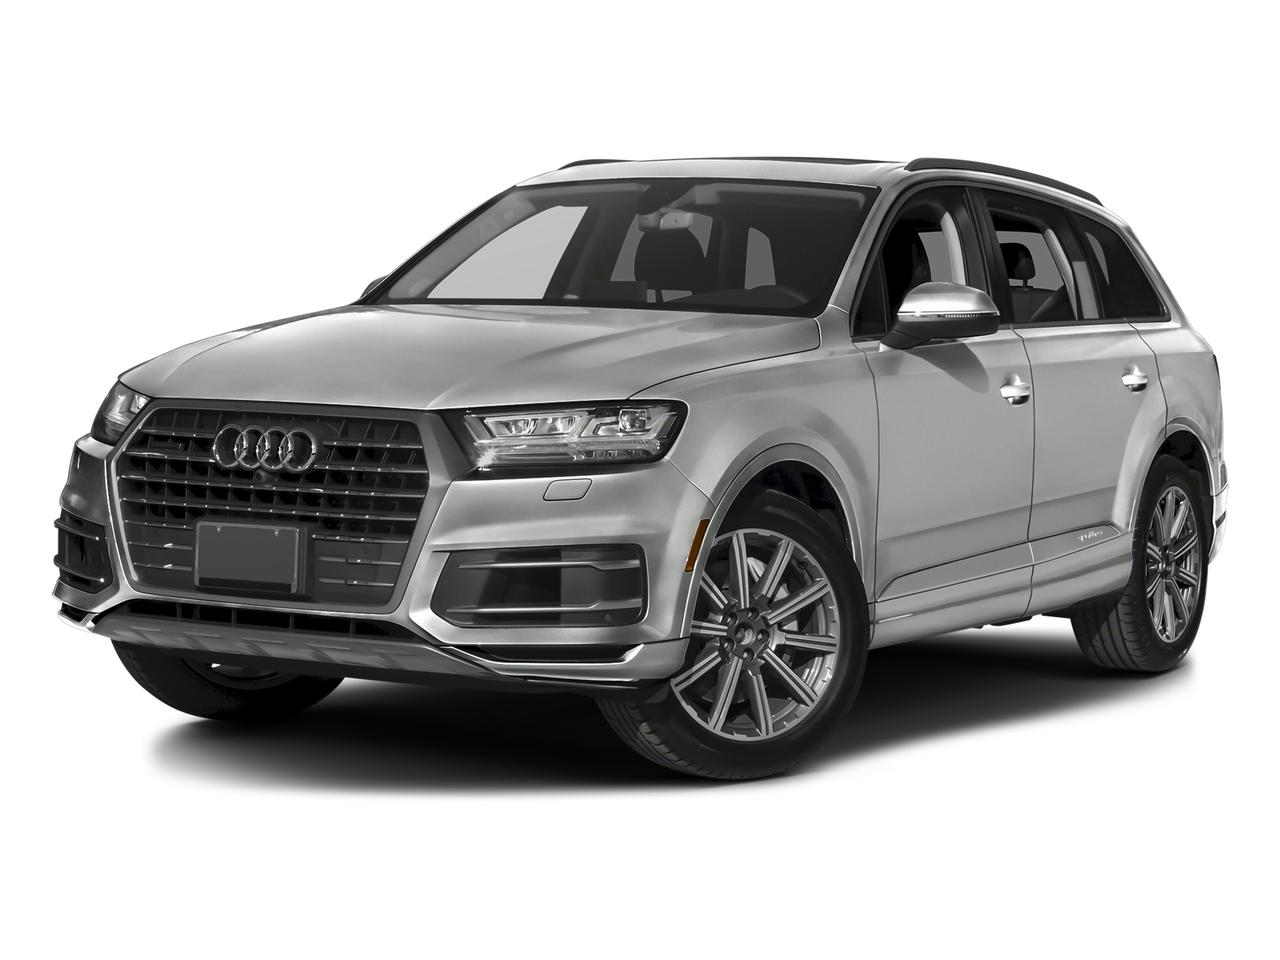 2017 Audi Q7 Vehicle Photo in VINCENNES, IN 47591-5519